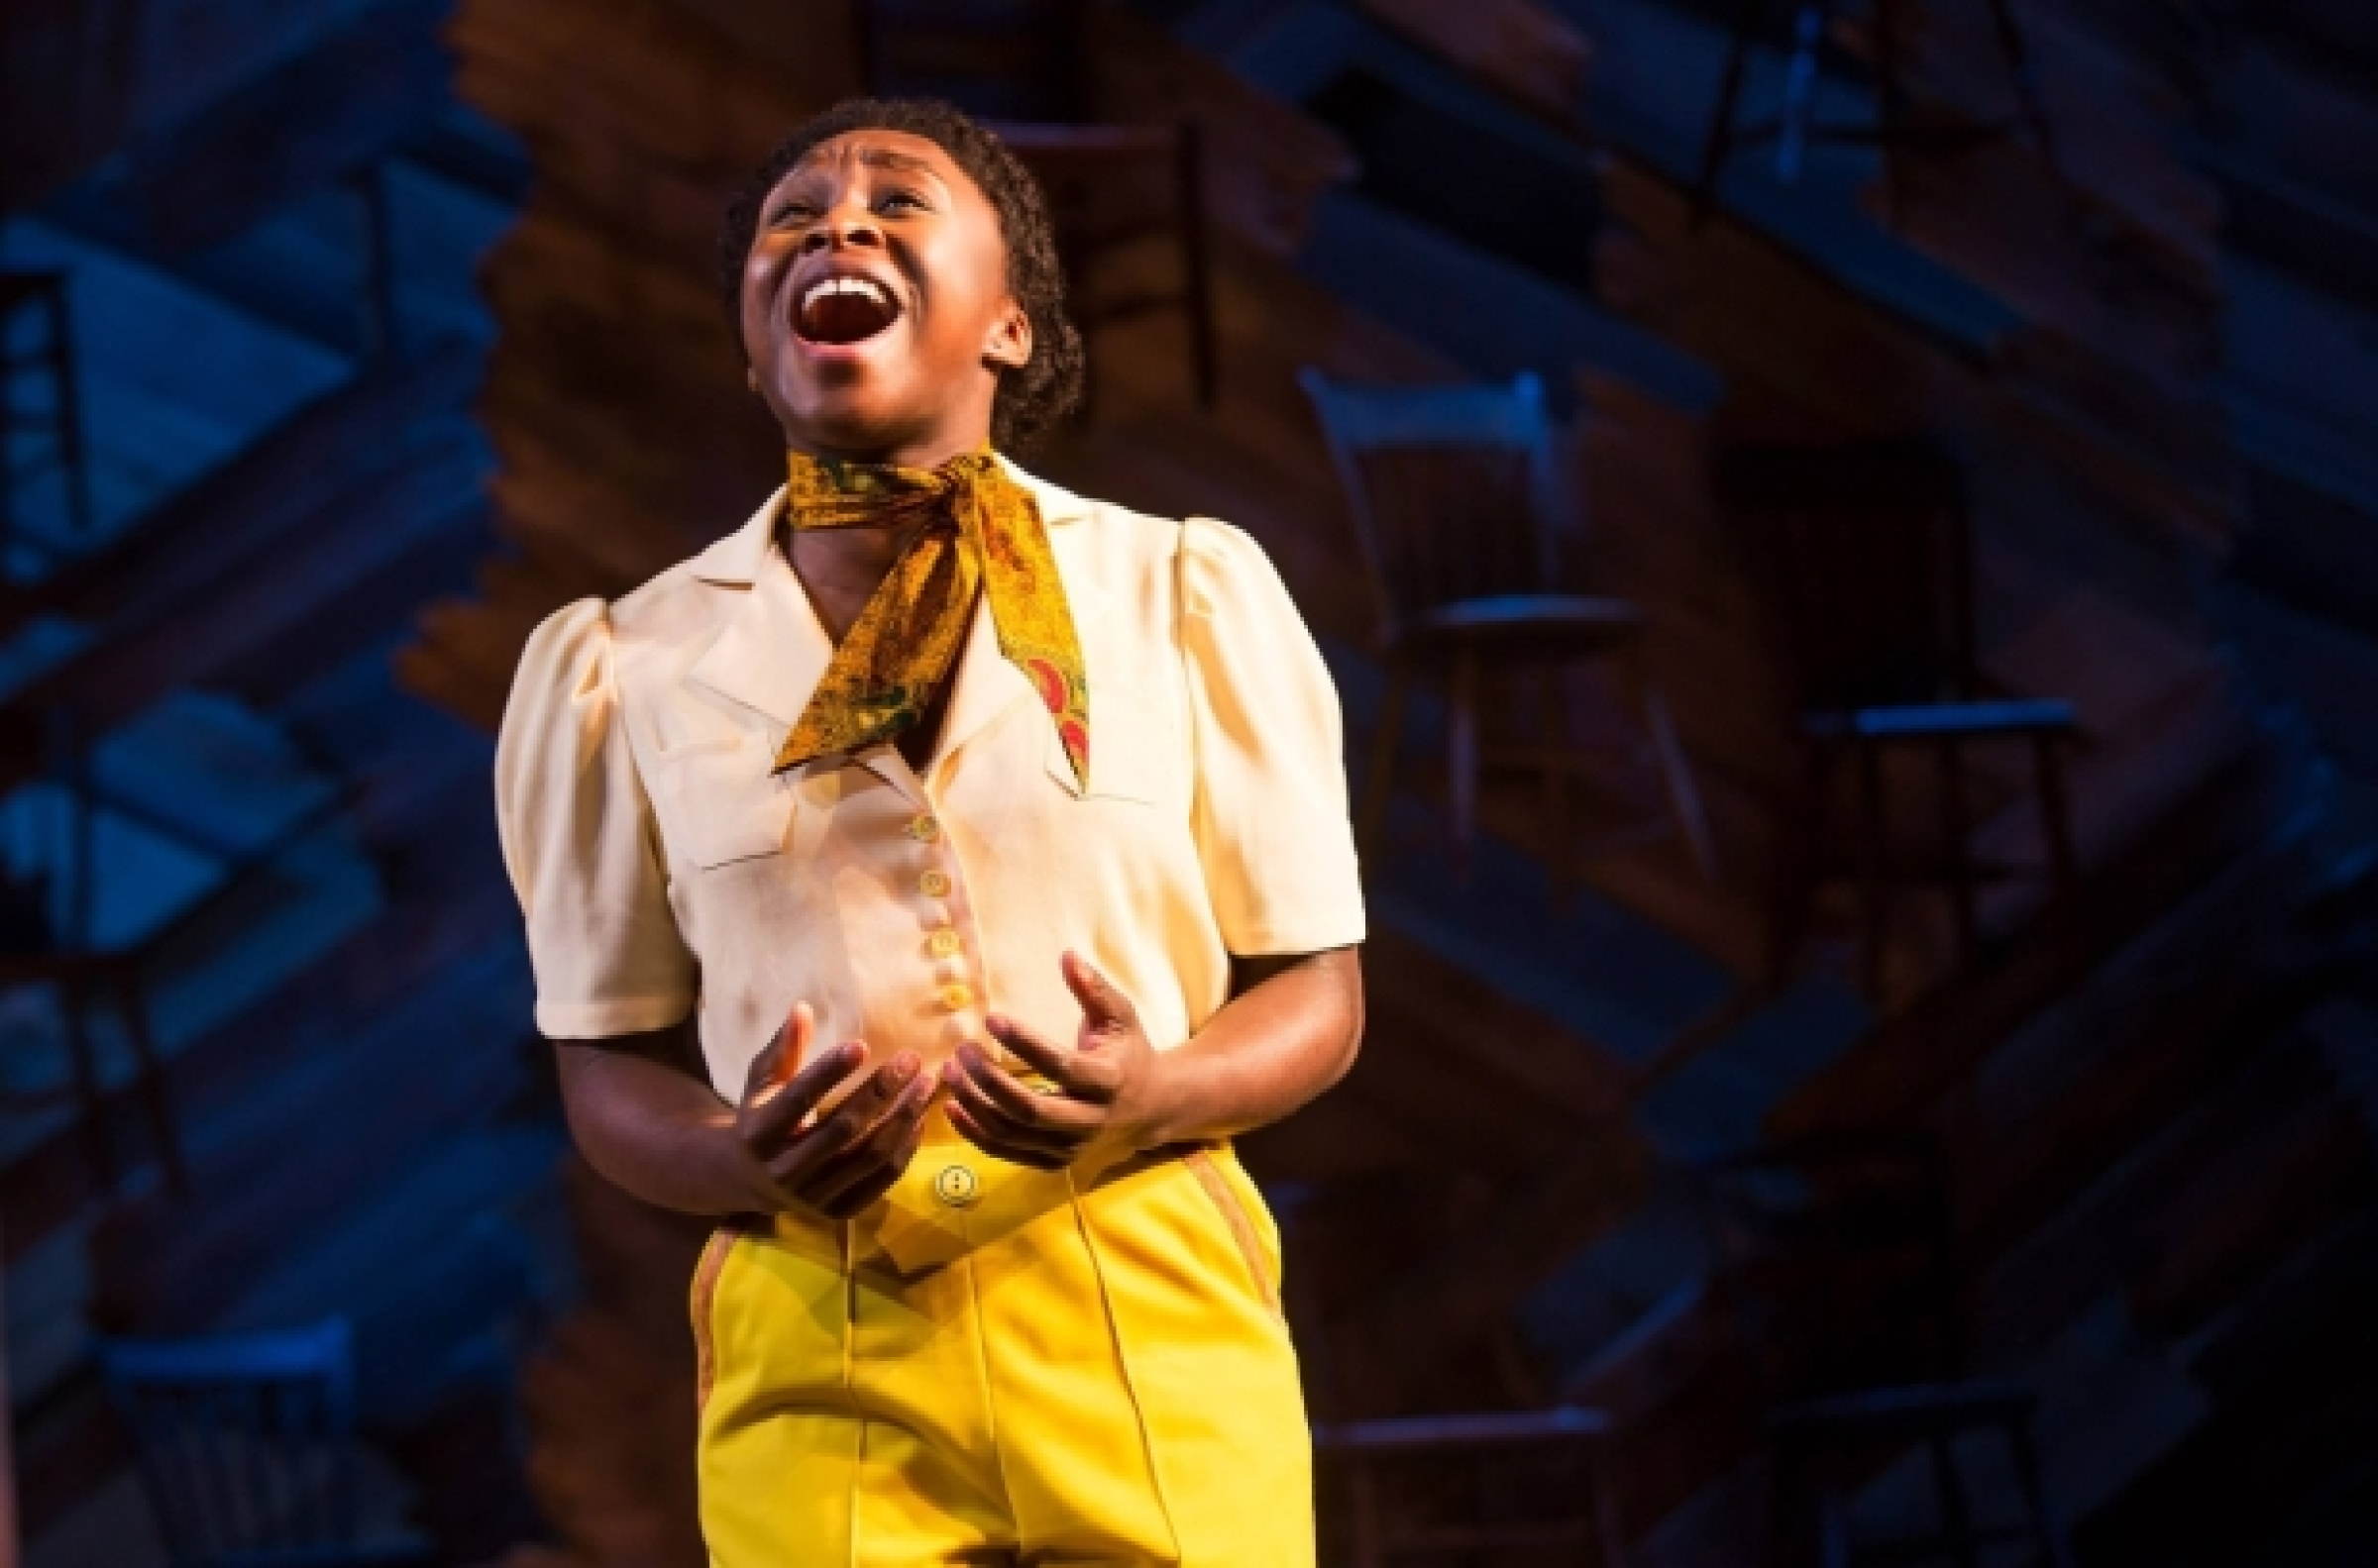 Crossword Test Your Musical Number Knowledge In This Week S Puzzle Theatermania